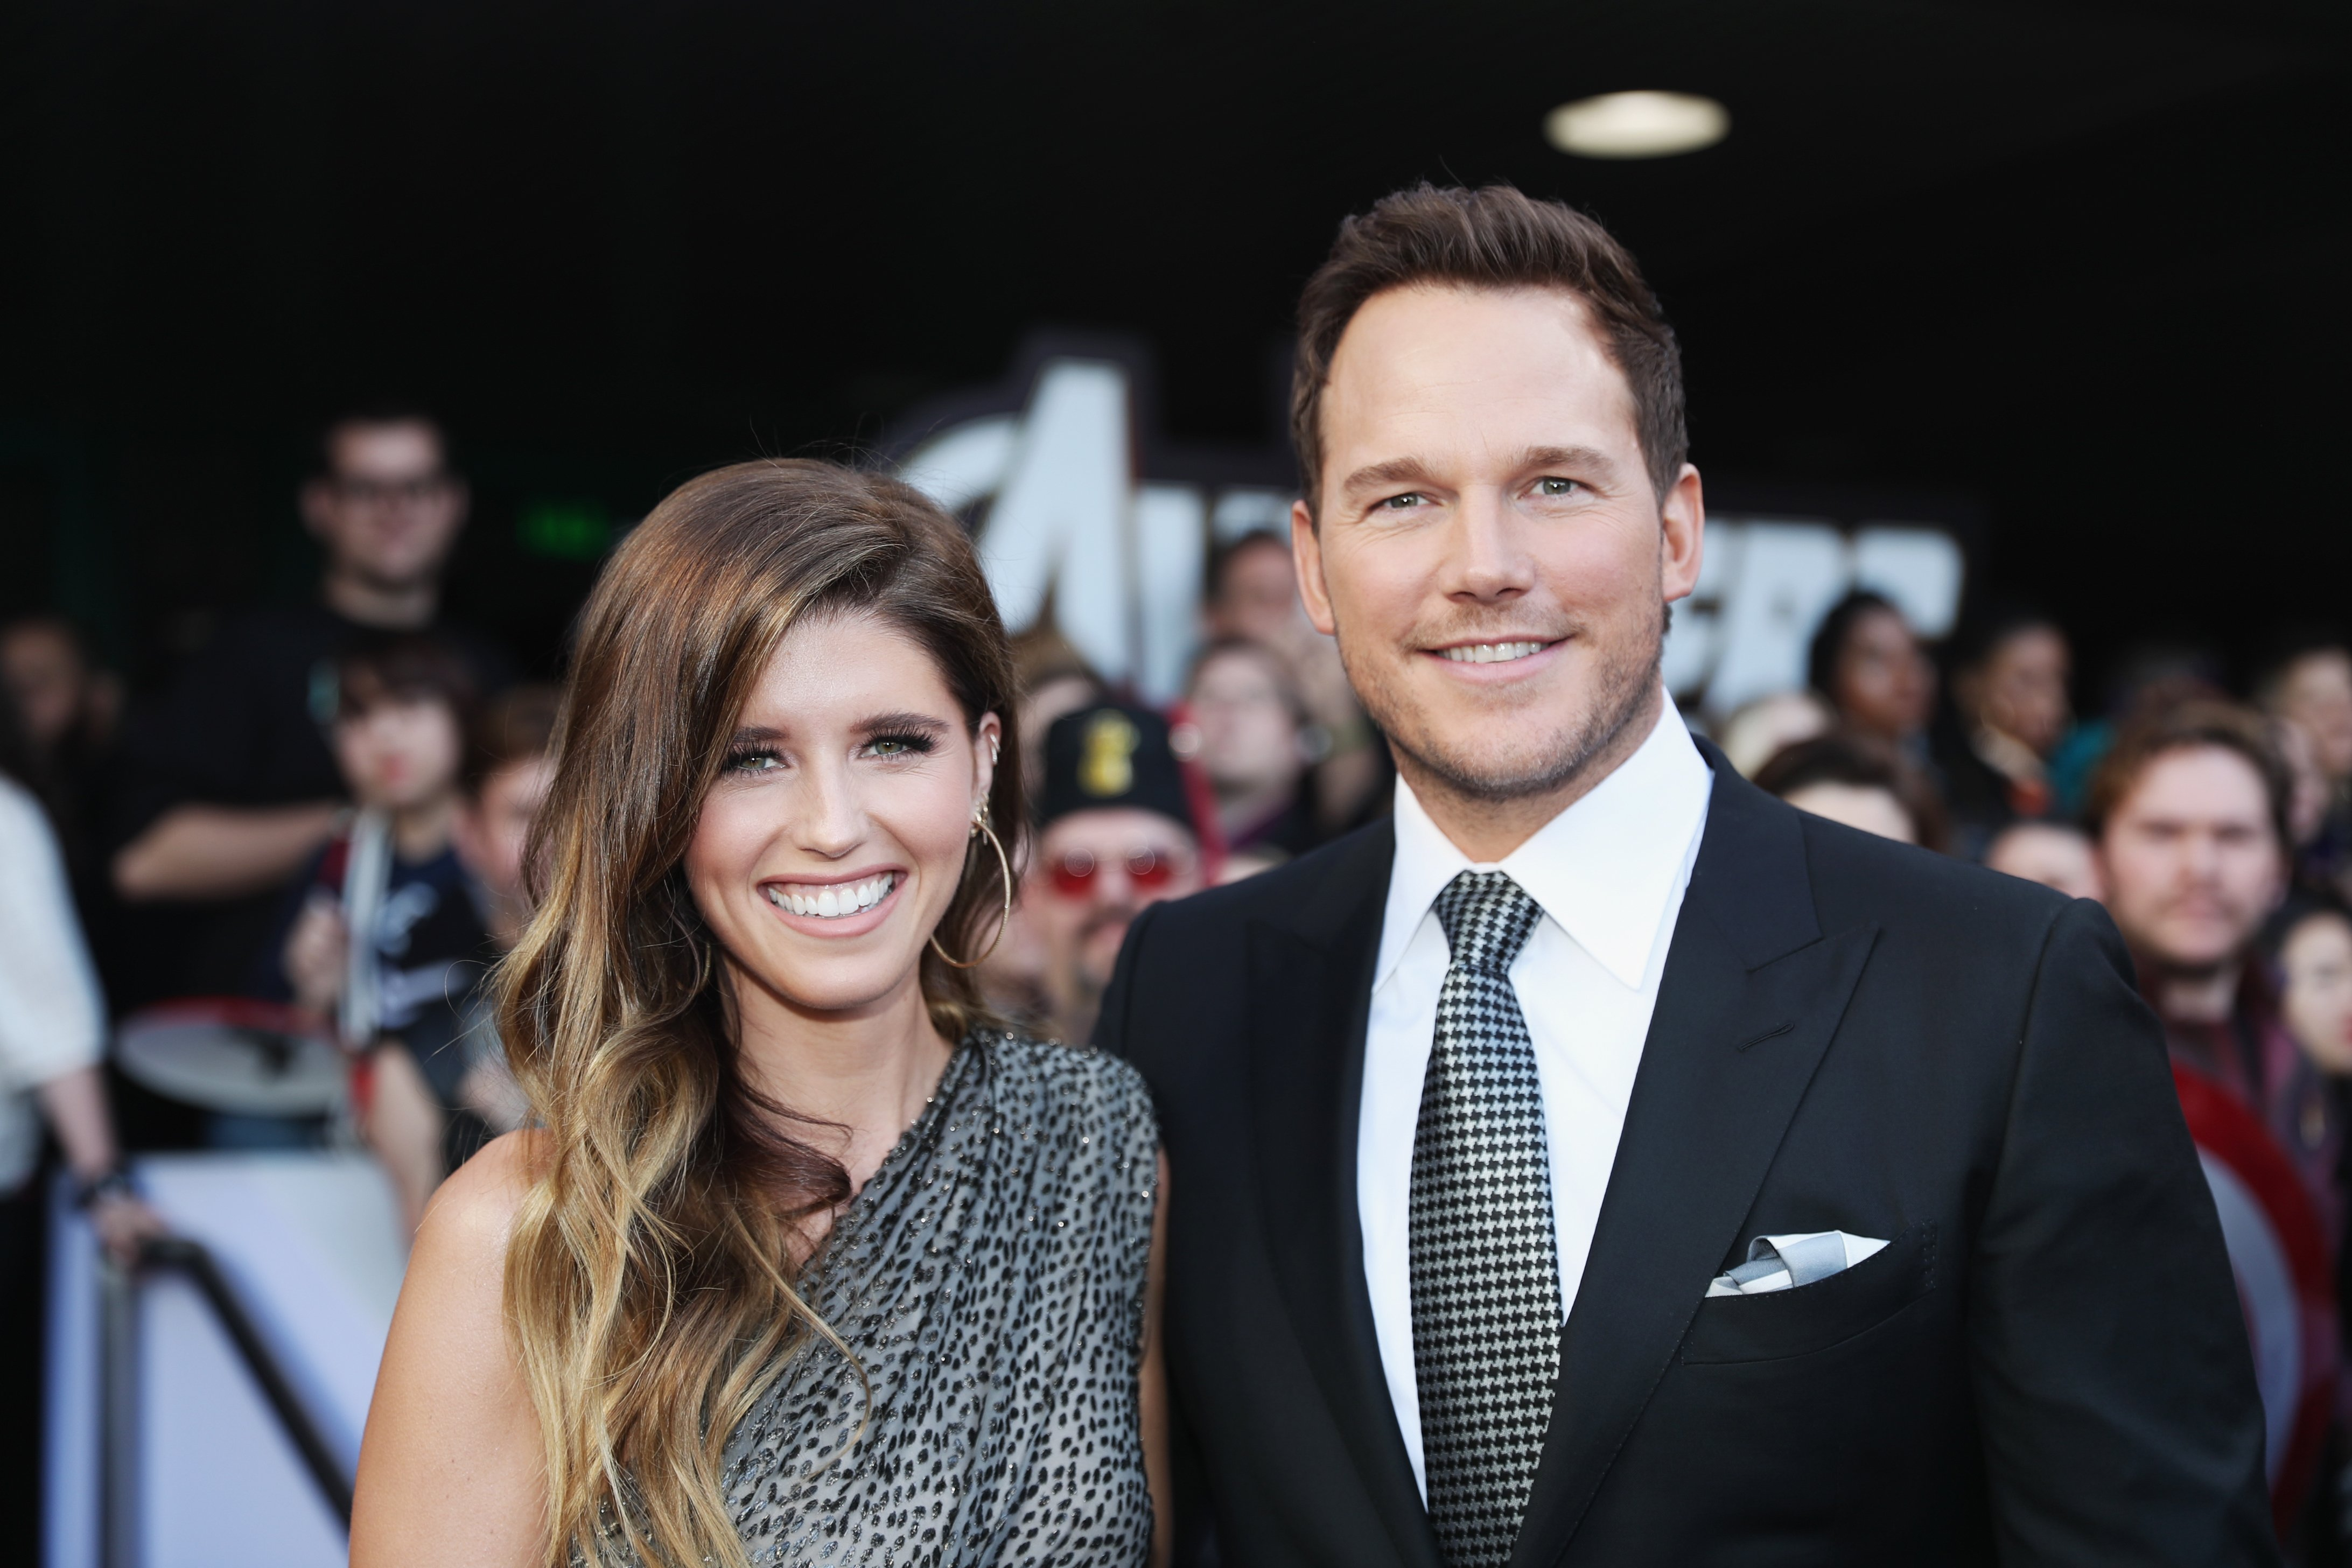 """Katherine Schwarzenegger and Chris Pratt attend the Los Angeles World Premiere of """"Avengers: Endgame"""" on April 23, 2019, in Los Angeles, California. 